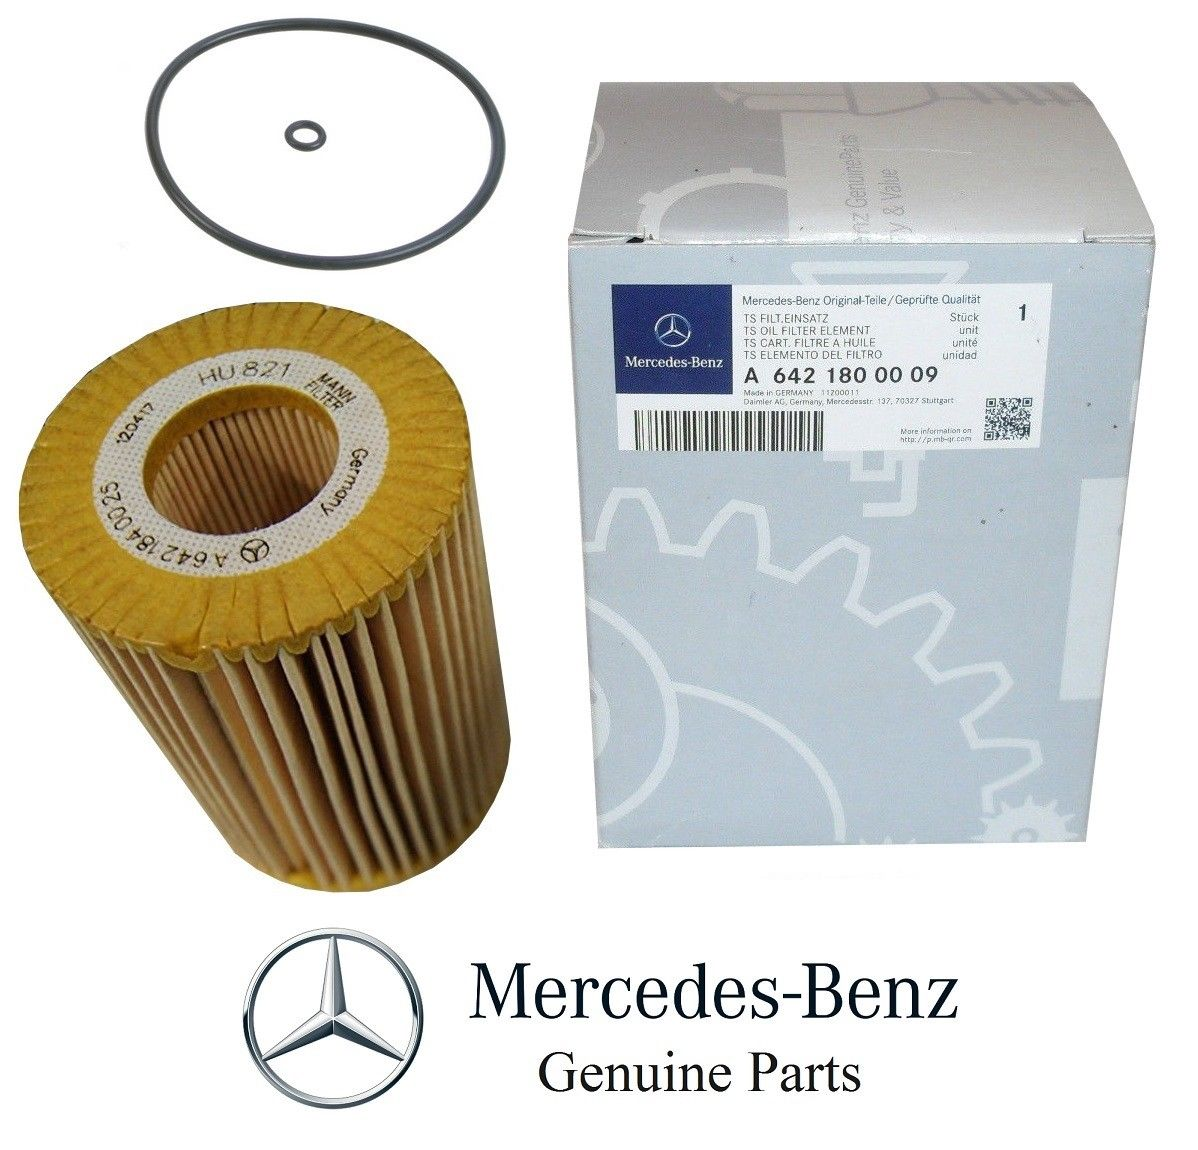 car are fuels mercedes maintenance high quality changes so benz reasons require article expensive from cars oil japan all change